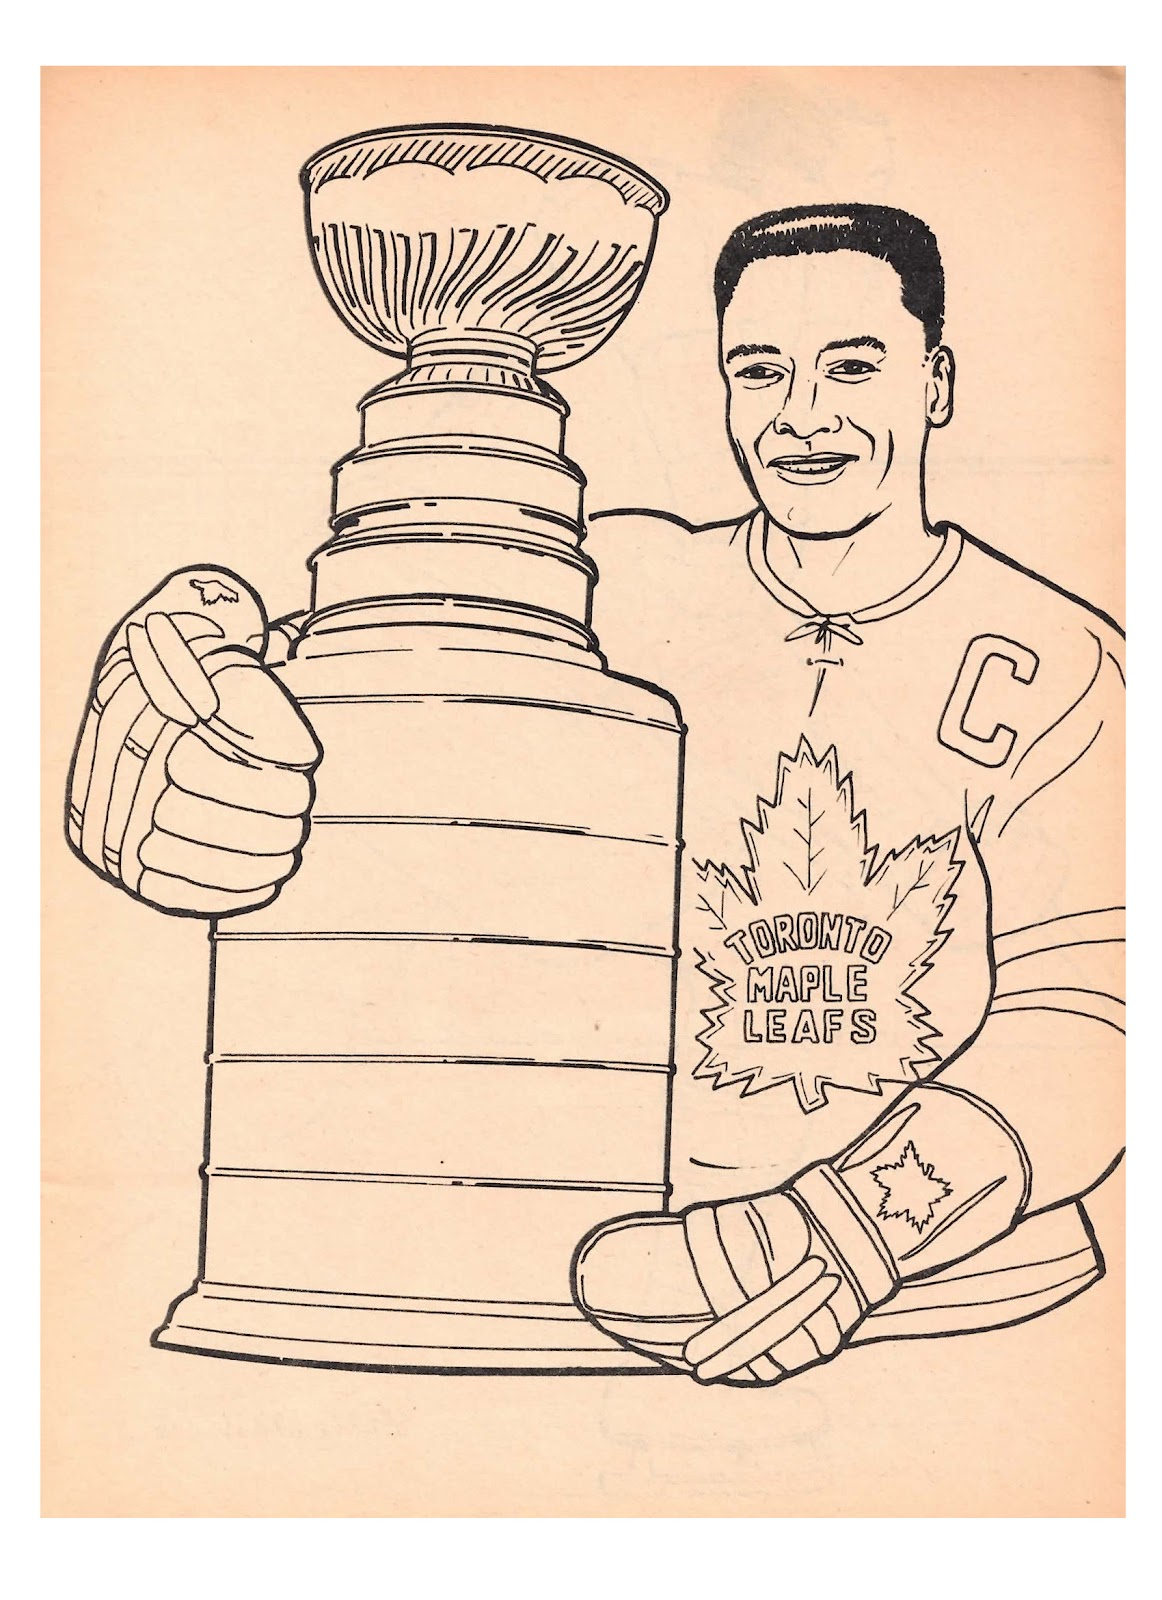 Uncategorized Toronto Maple Leafs Coloring Pages toronto maple leafs coloring pages laura williams pages